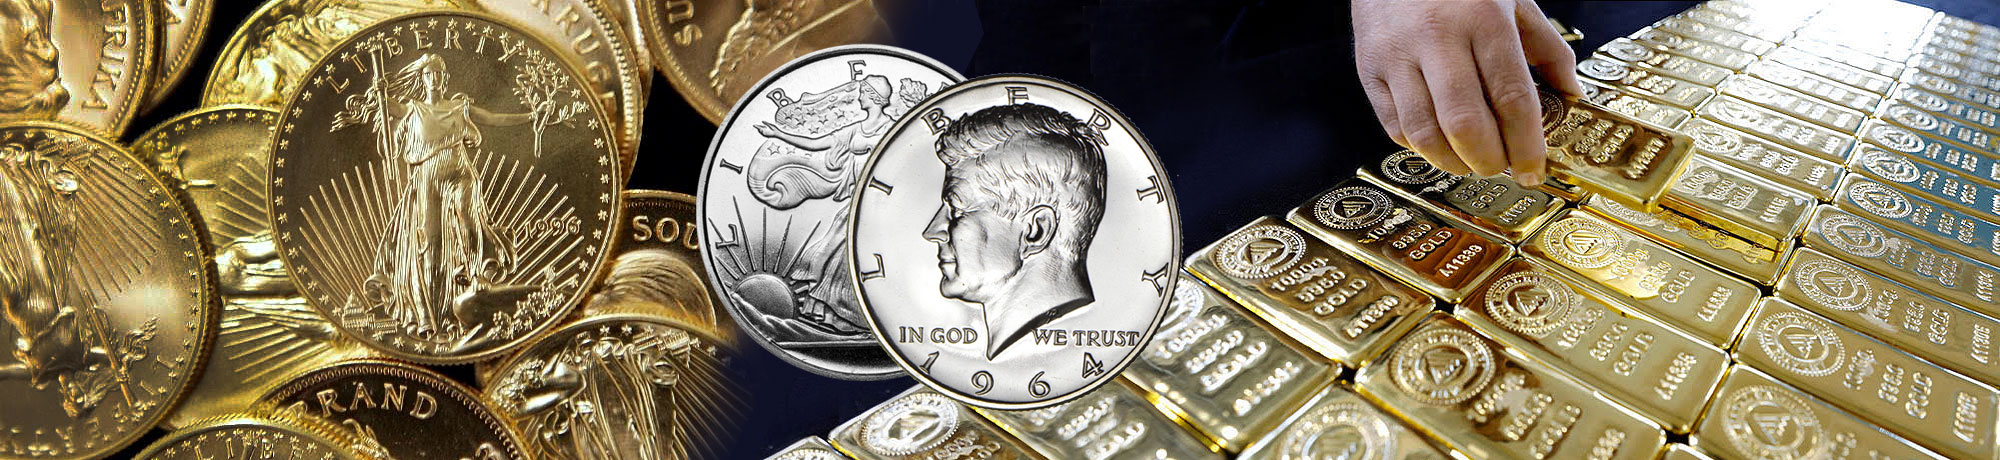 Precious Metals - Gold and Silver